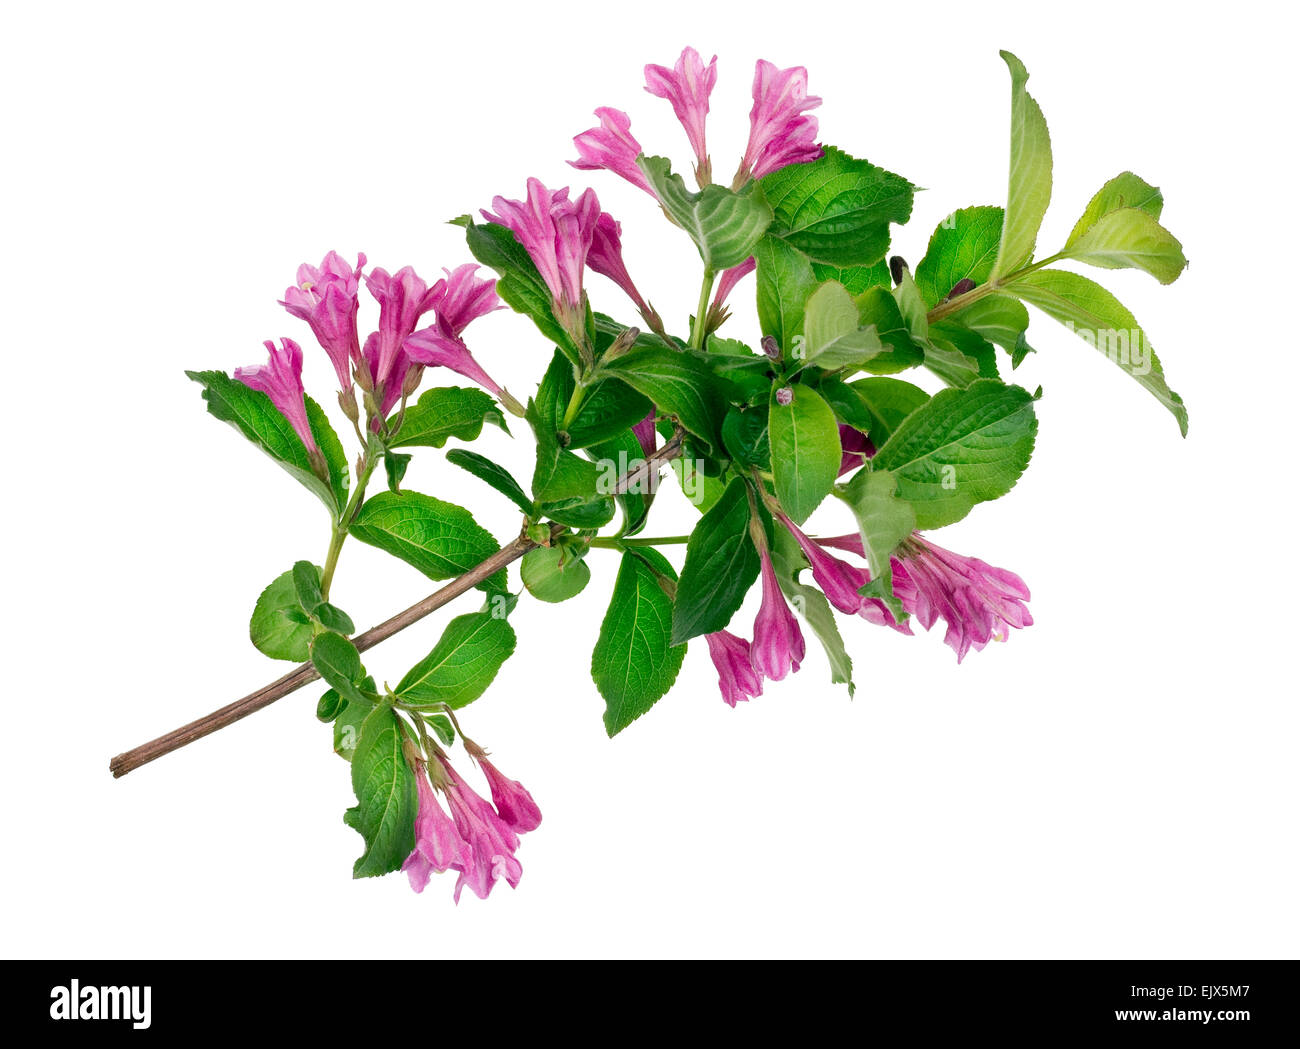 Ideal green bush spring branch with magenta buds   isolated - Stock Image